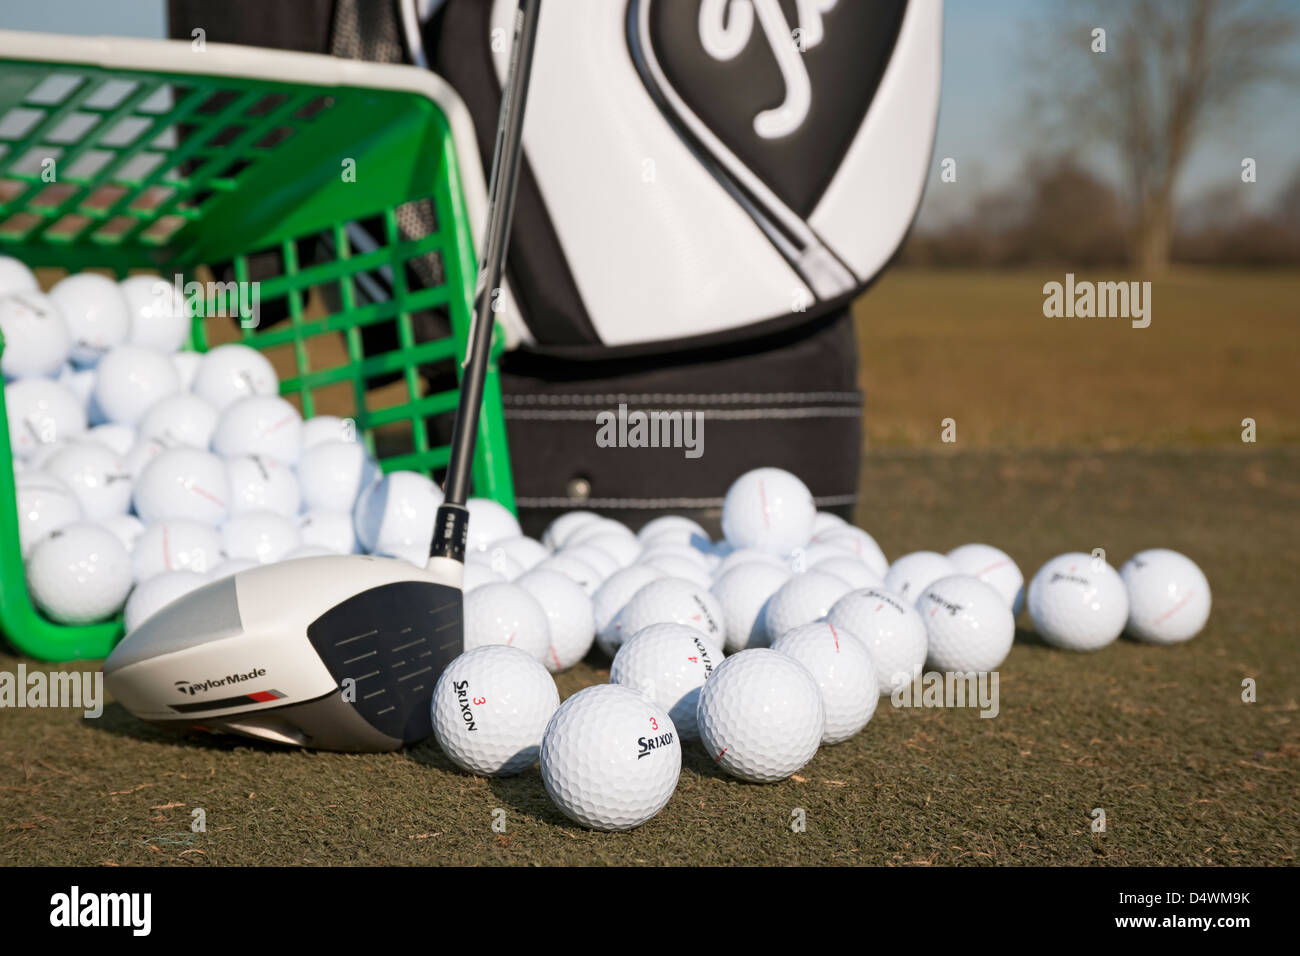 Golf range balls and driver on a golf practice ground England UK United Kingdom GB Great Britain Stock Photo